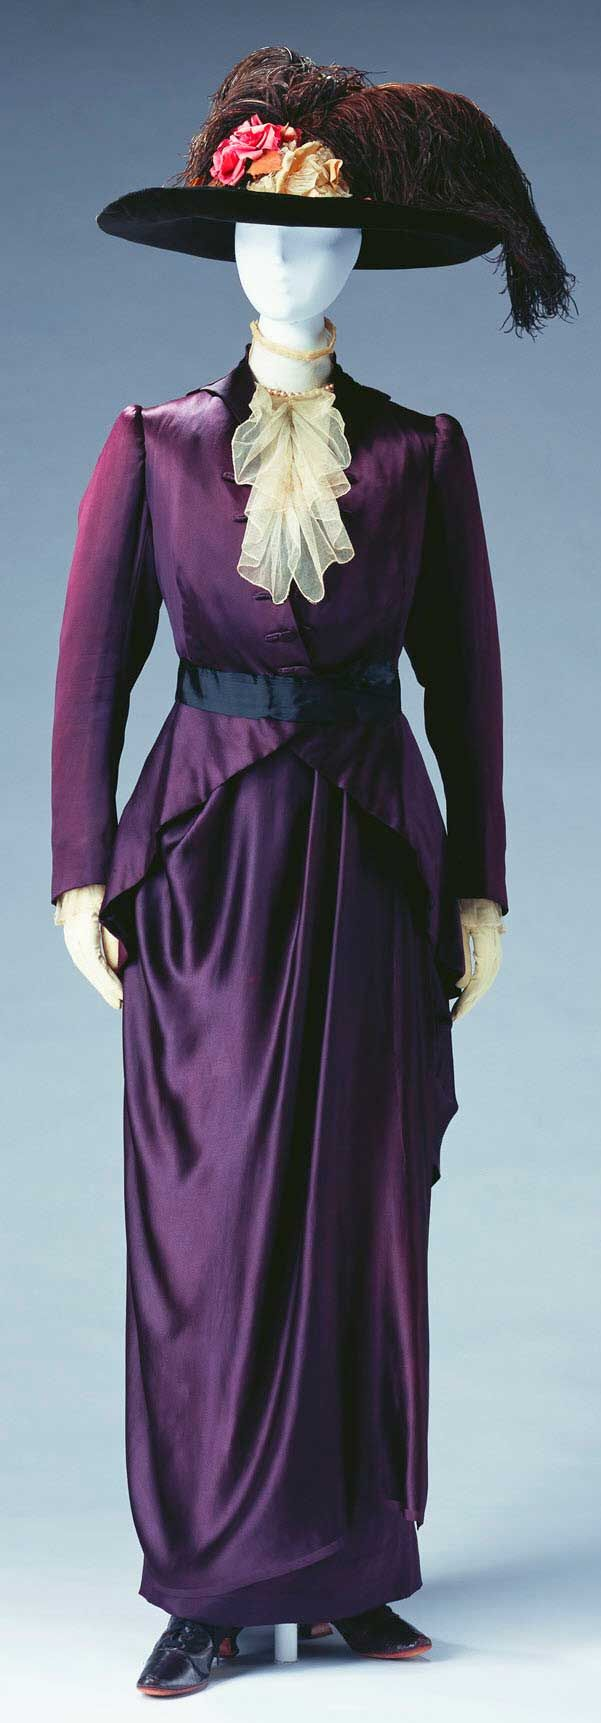 """Pierre Bulloz, Paris, ca. 1910. Deep purple silk satin; set of jacket, bodice, and skirt; black silk faille belt; white cotton tulle jabot on bodice. Kyoto Costume Institute: """"Women started wearing tailored suits, with designs that were influenced by men's clothing, in the middle of the 19th century as traveling wear or sportswear. At around 1910 they became a popular wardrobe staple."""""""